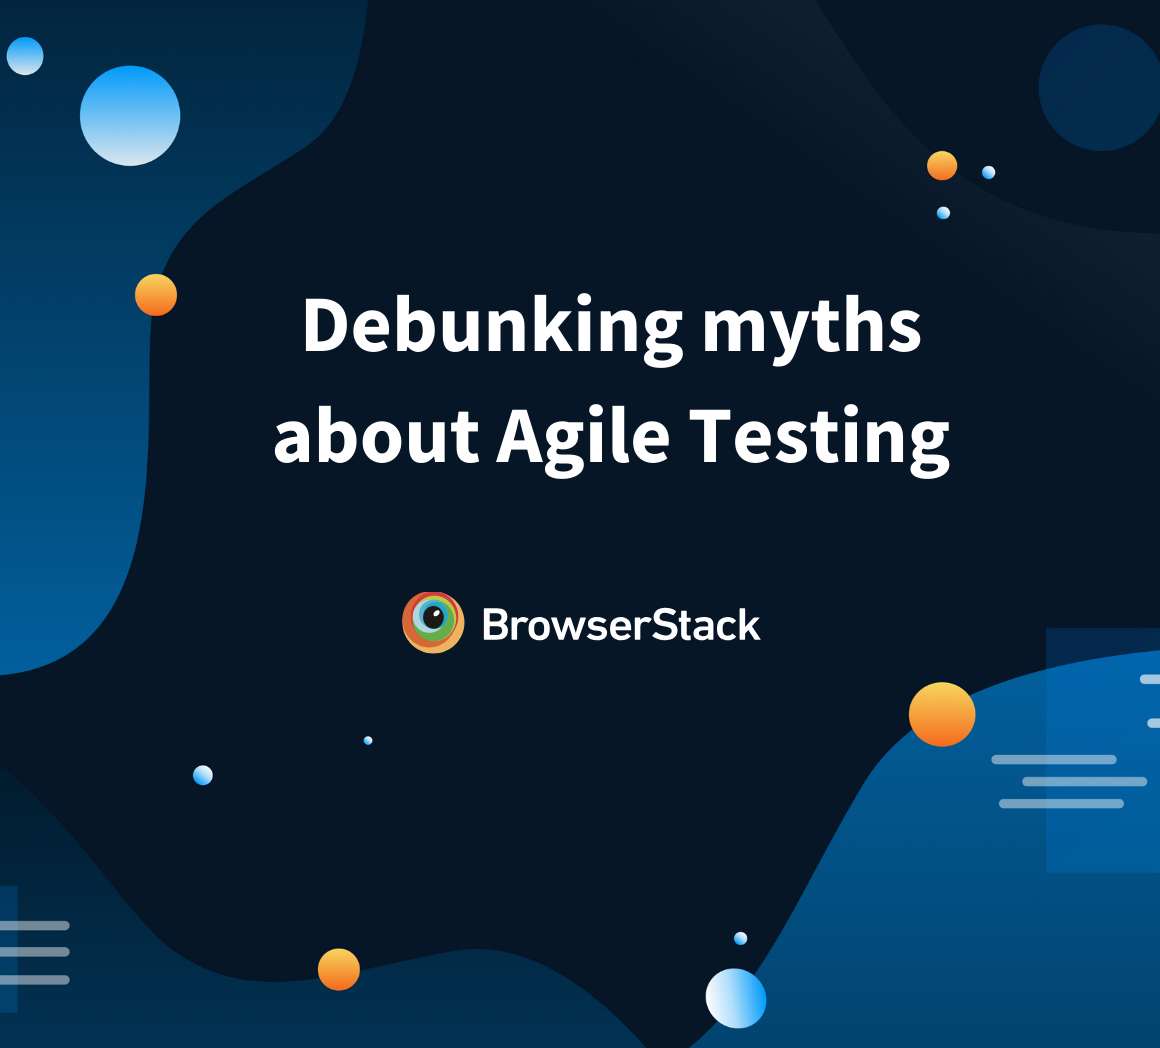 Myths about agile testing